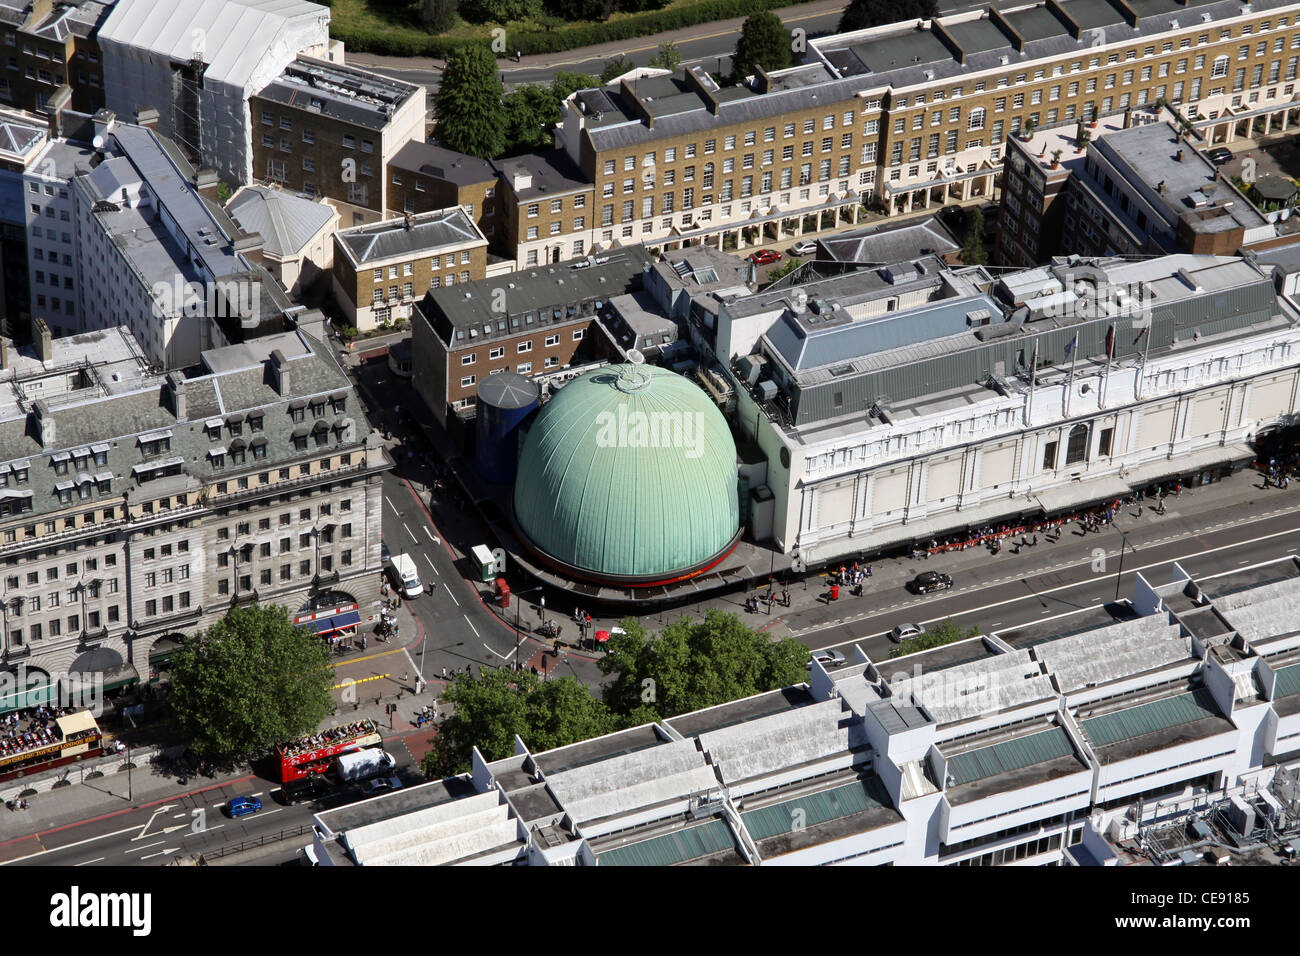 Aerial image Madame Tussauds and the former London Planetarium, Marylebone Road, London NW1 - Stock Image